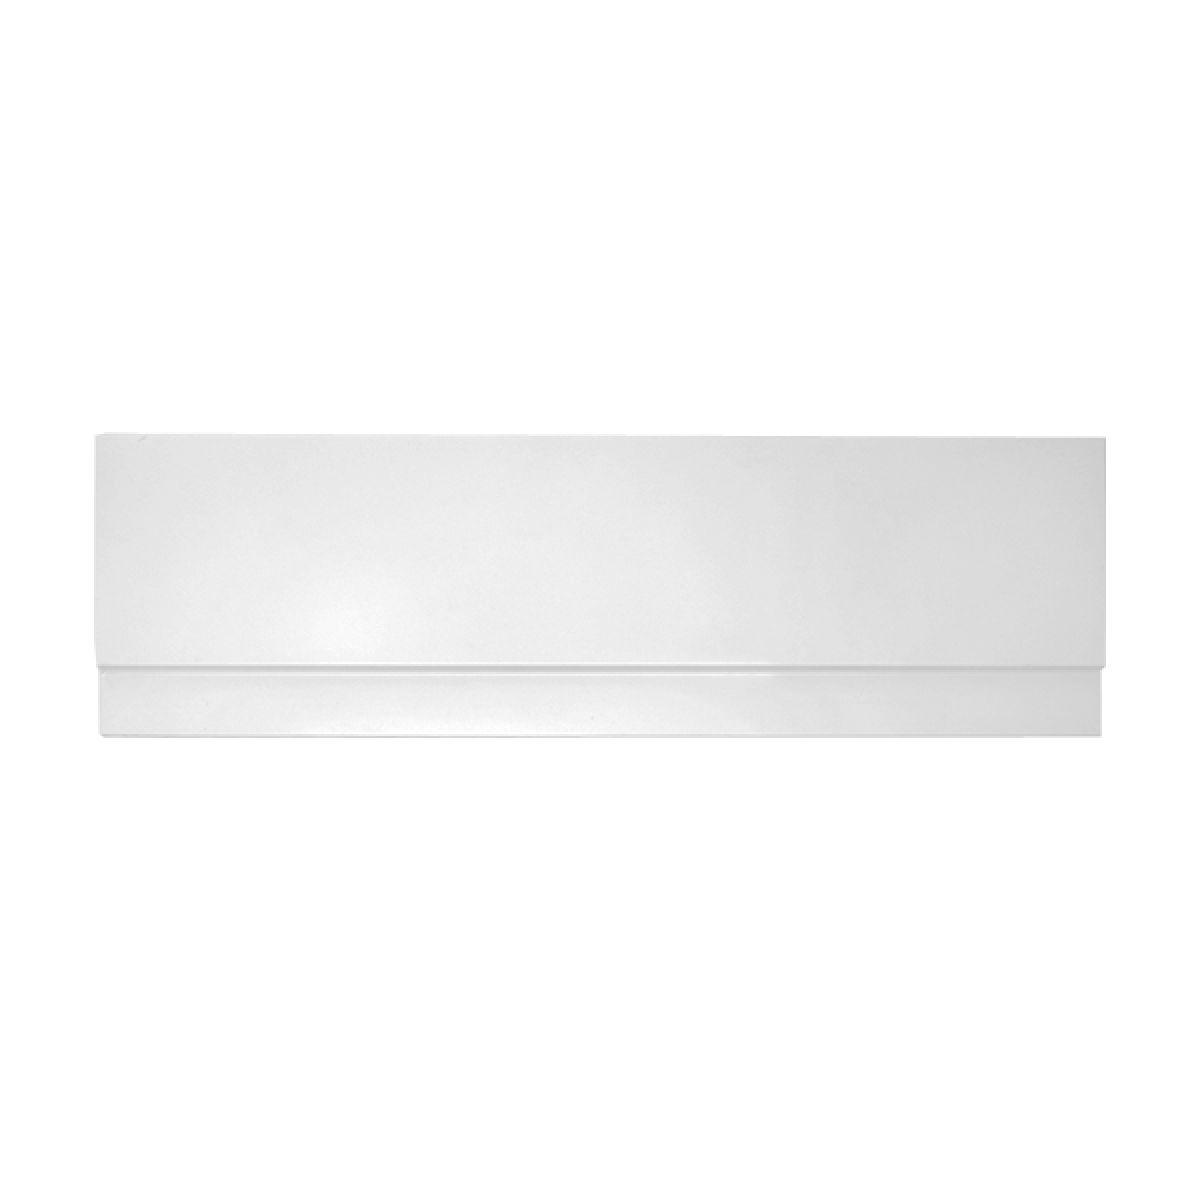 Frontline Superstyle White Bath Front Panel 1700mm